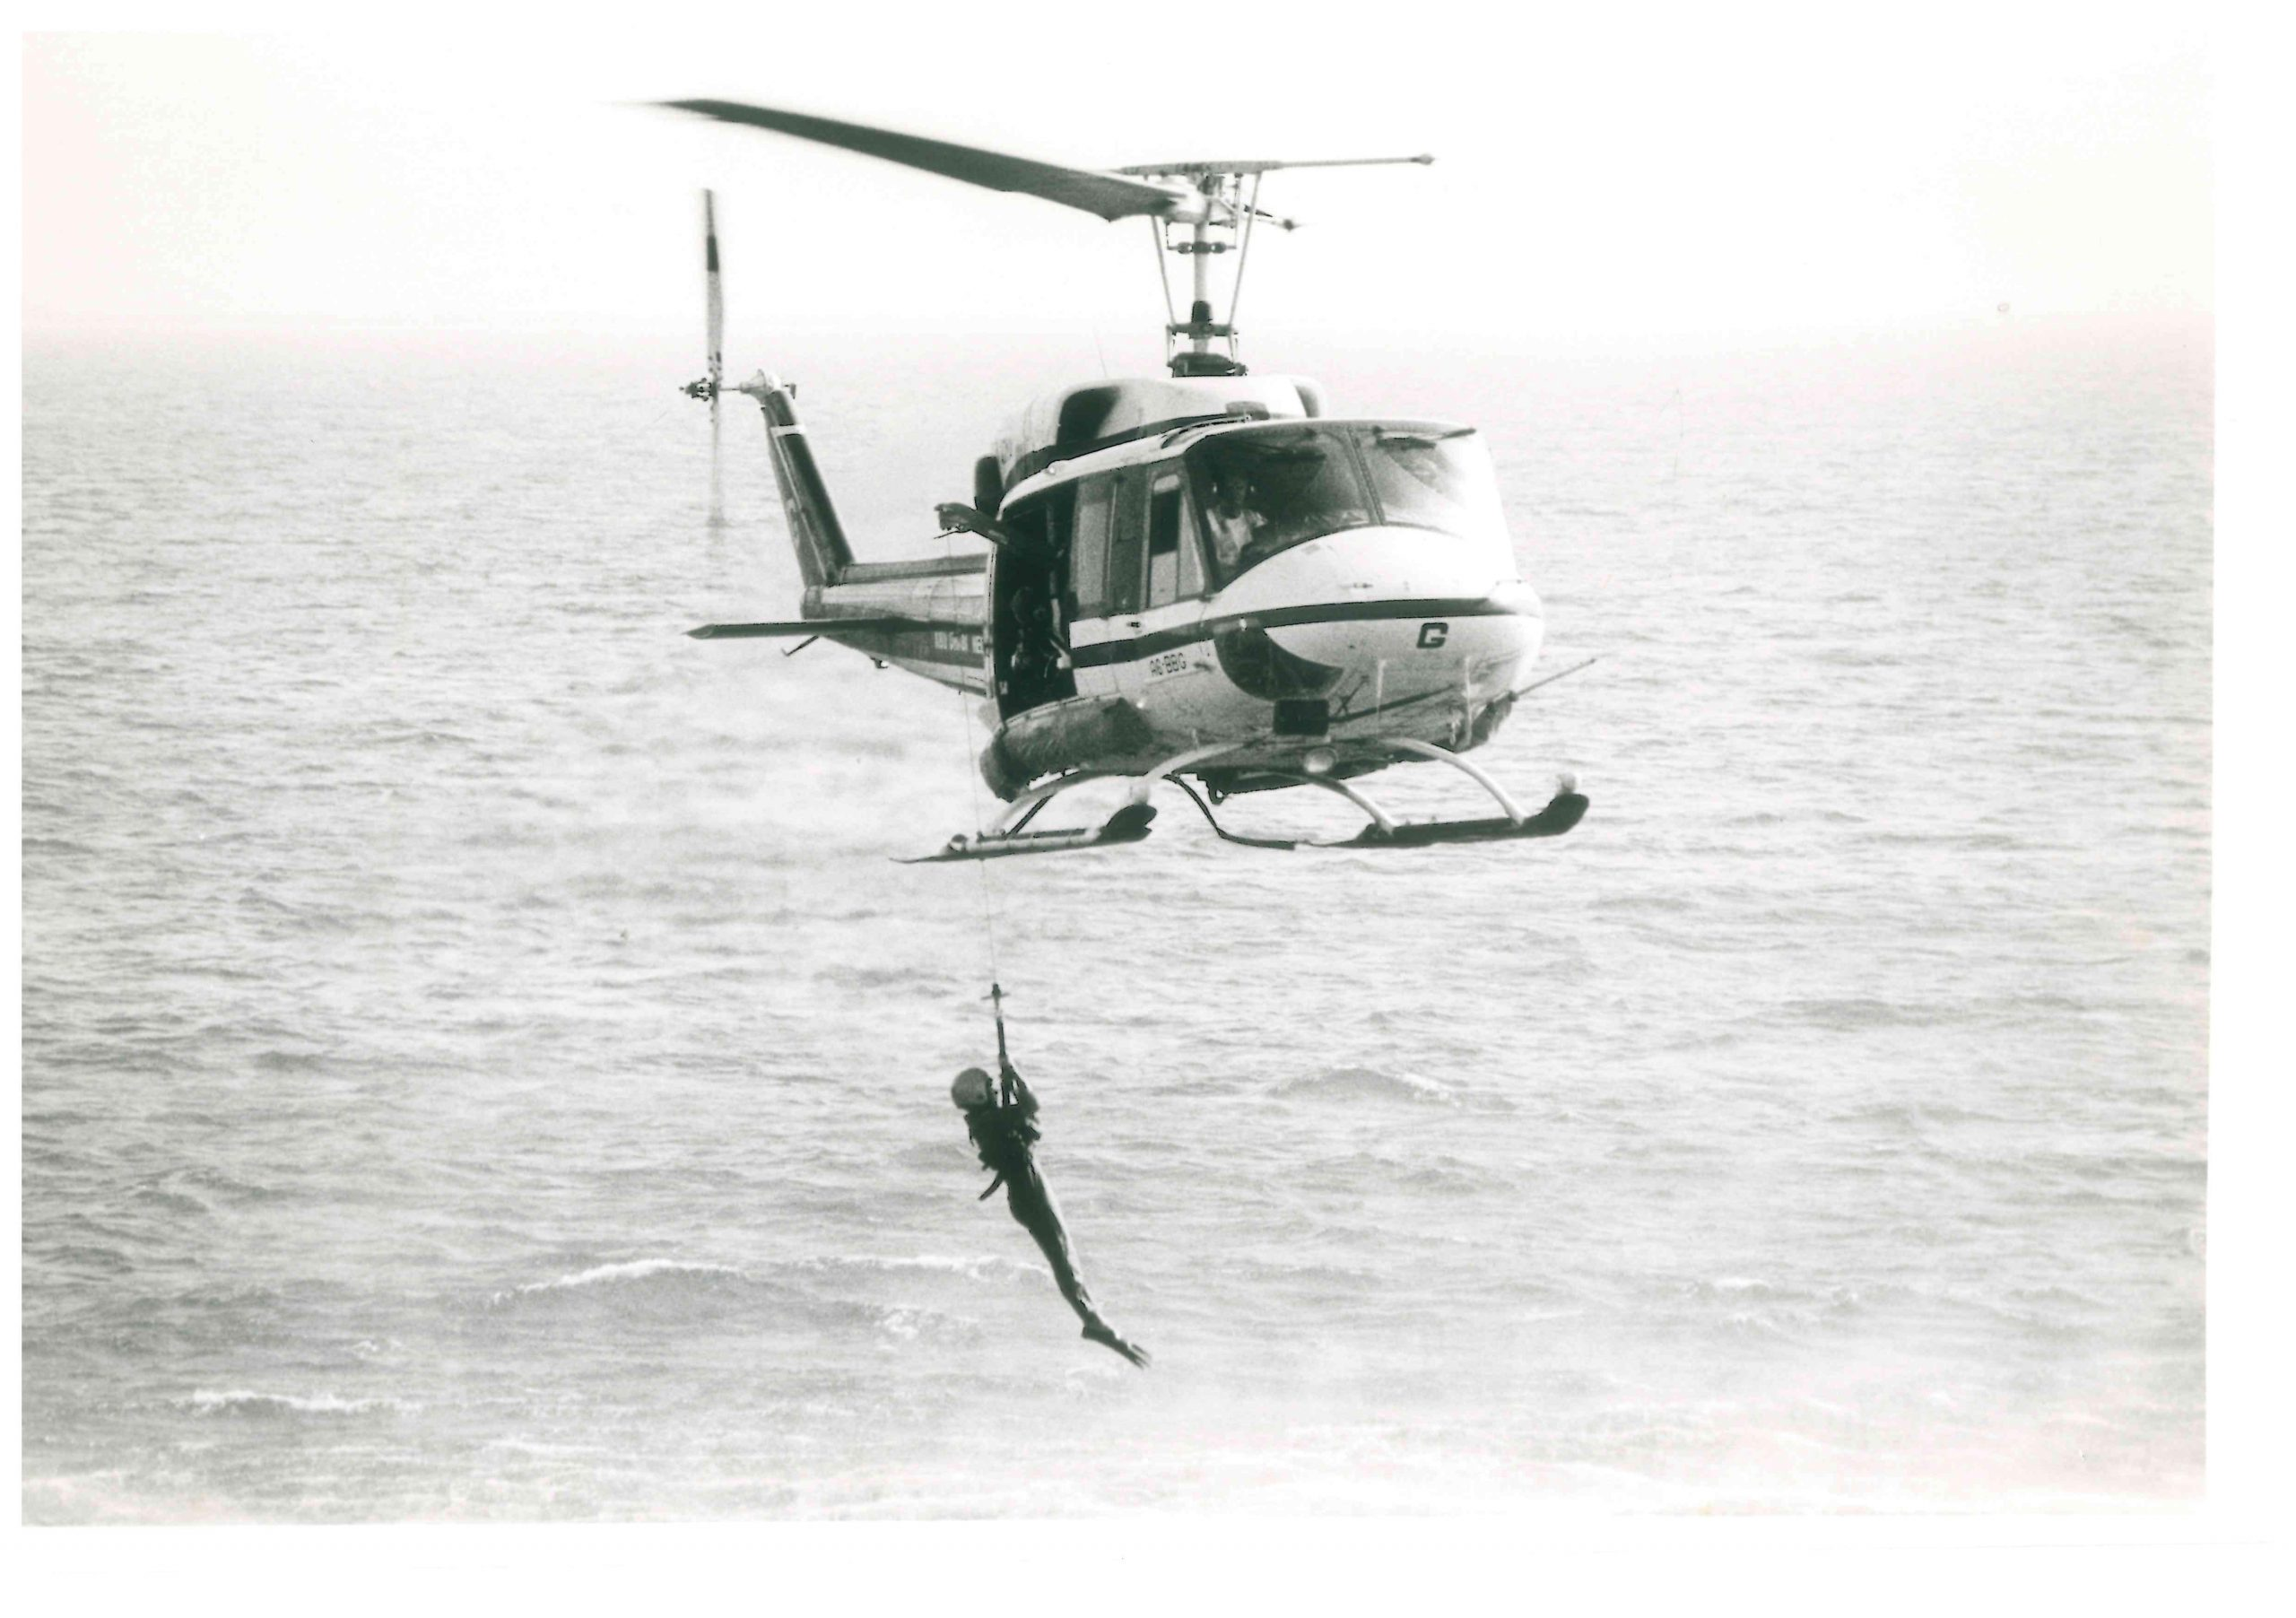 Bell 212 during search and rescue training